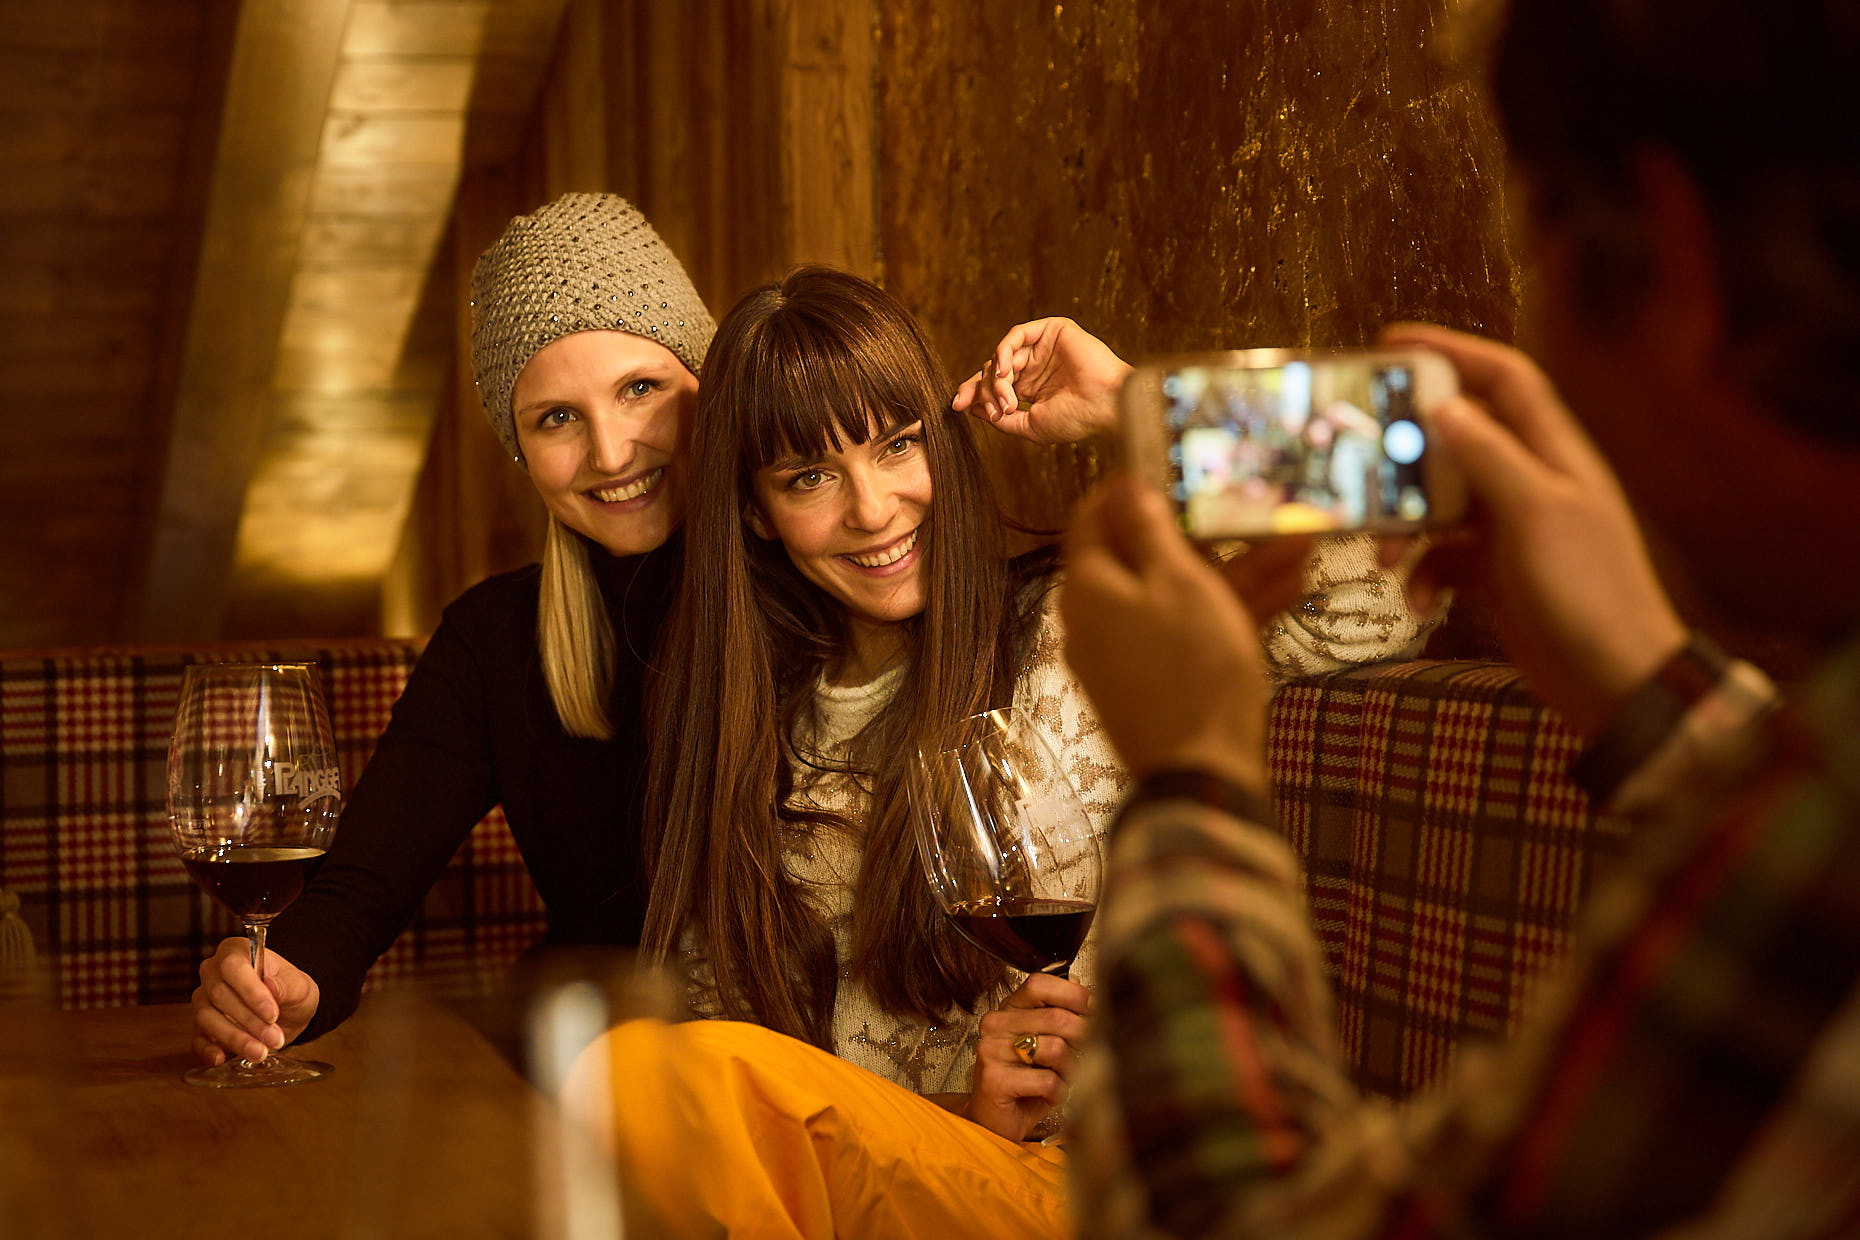 Bar Selfie| Stefan Kuerzi - Tourism Photography